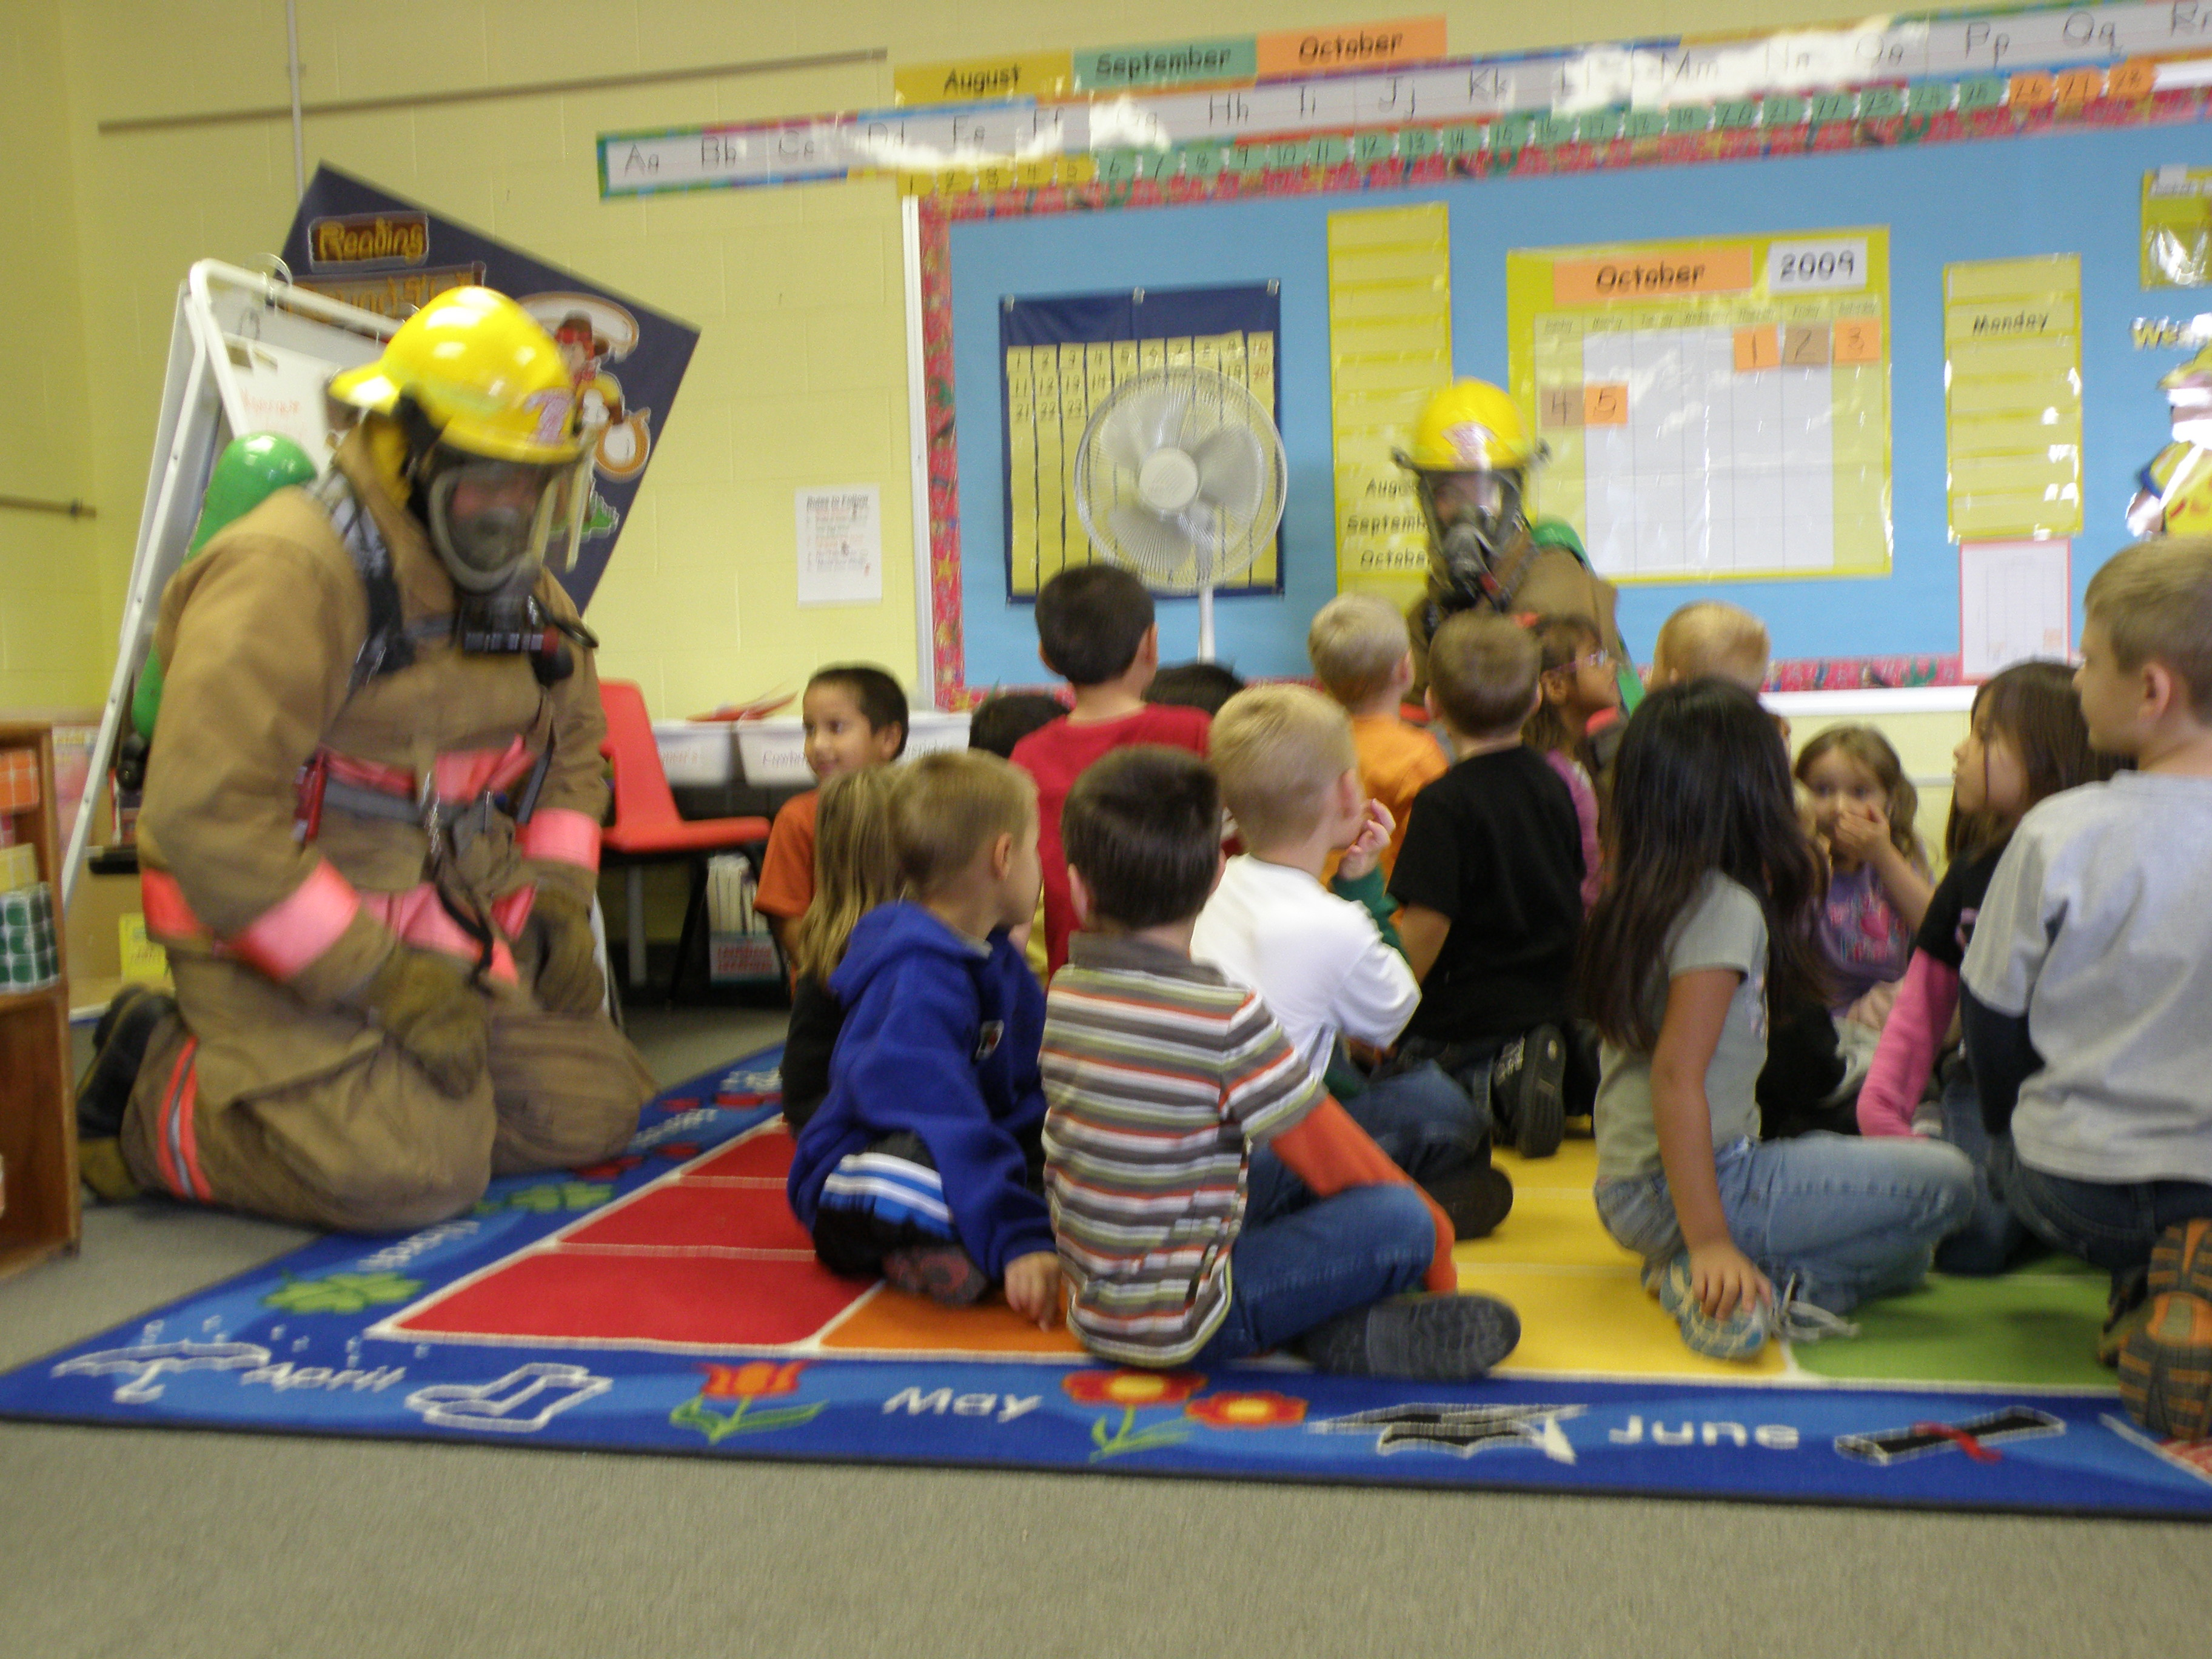 Firefighter Giving a Classroom Demonstration